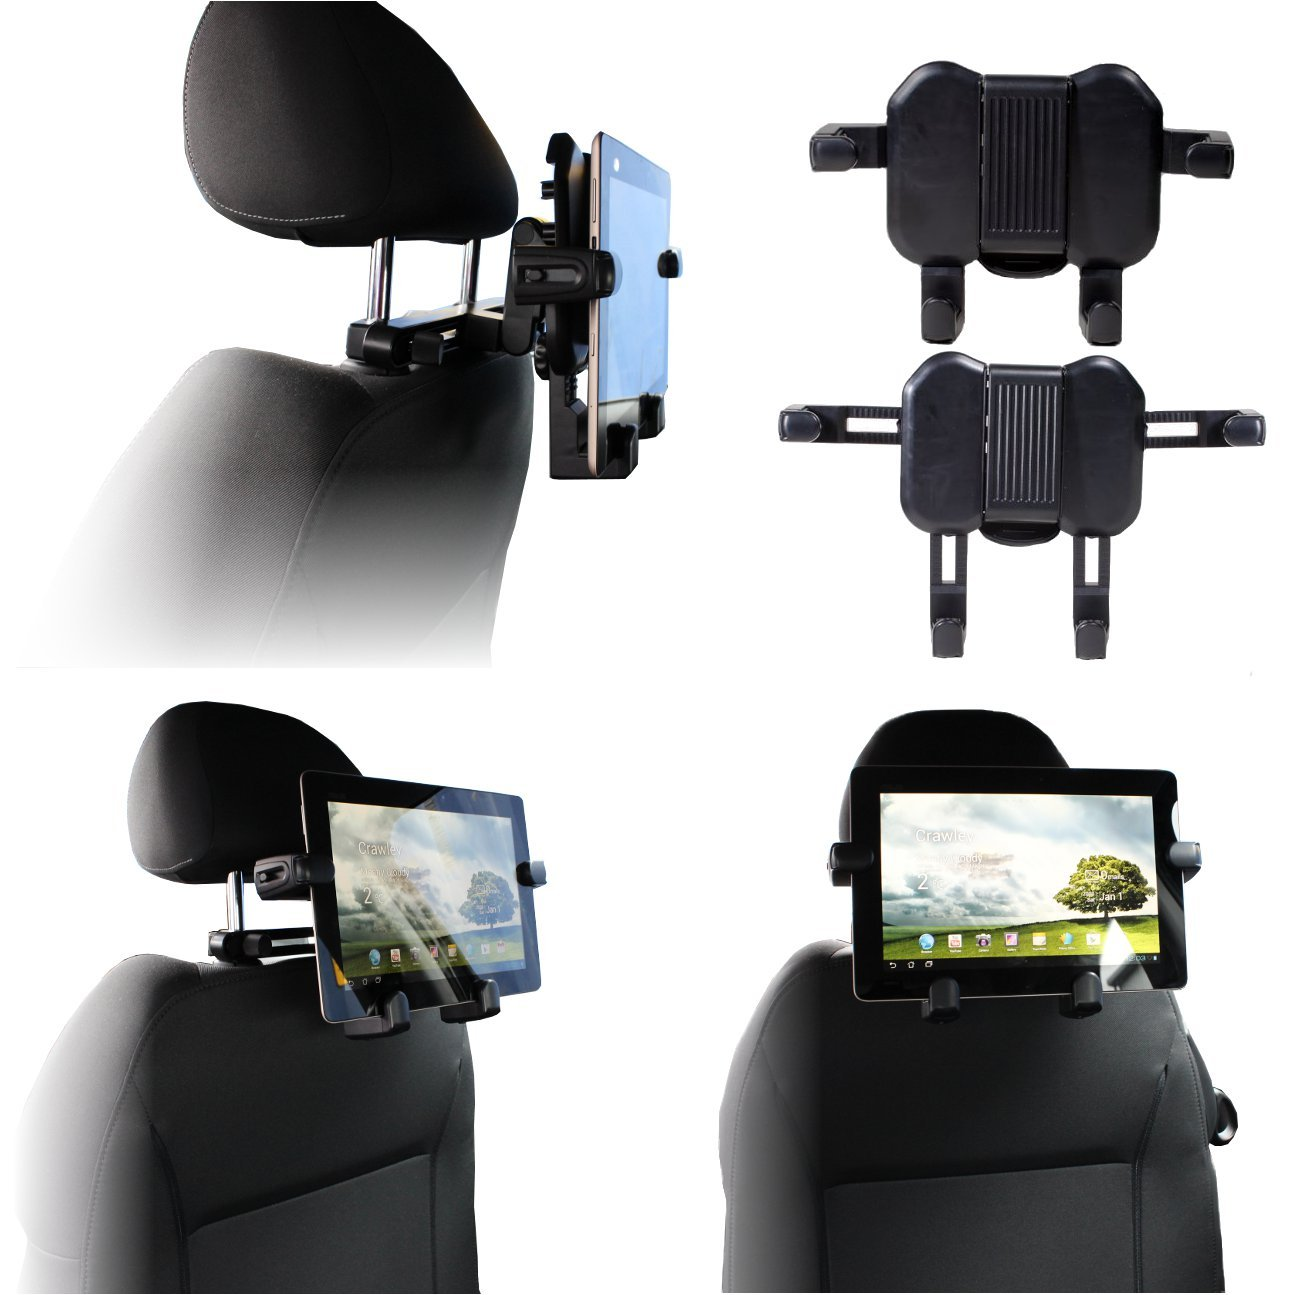 Navitech Portable DVD Player / Netbook / Notebook / Tablet PC & Laptop In Car Headrest / Back Seat Expandable Firm Grip Mount Cradle For A Huge Range Of Devices Such As: Samsung Galaxy Tab 10.1, Samsung Galaxy Tab 10.1 v, Samsung Galaxy Tab 2 10.1, Samsun